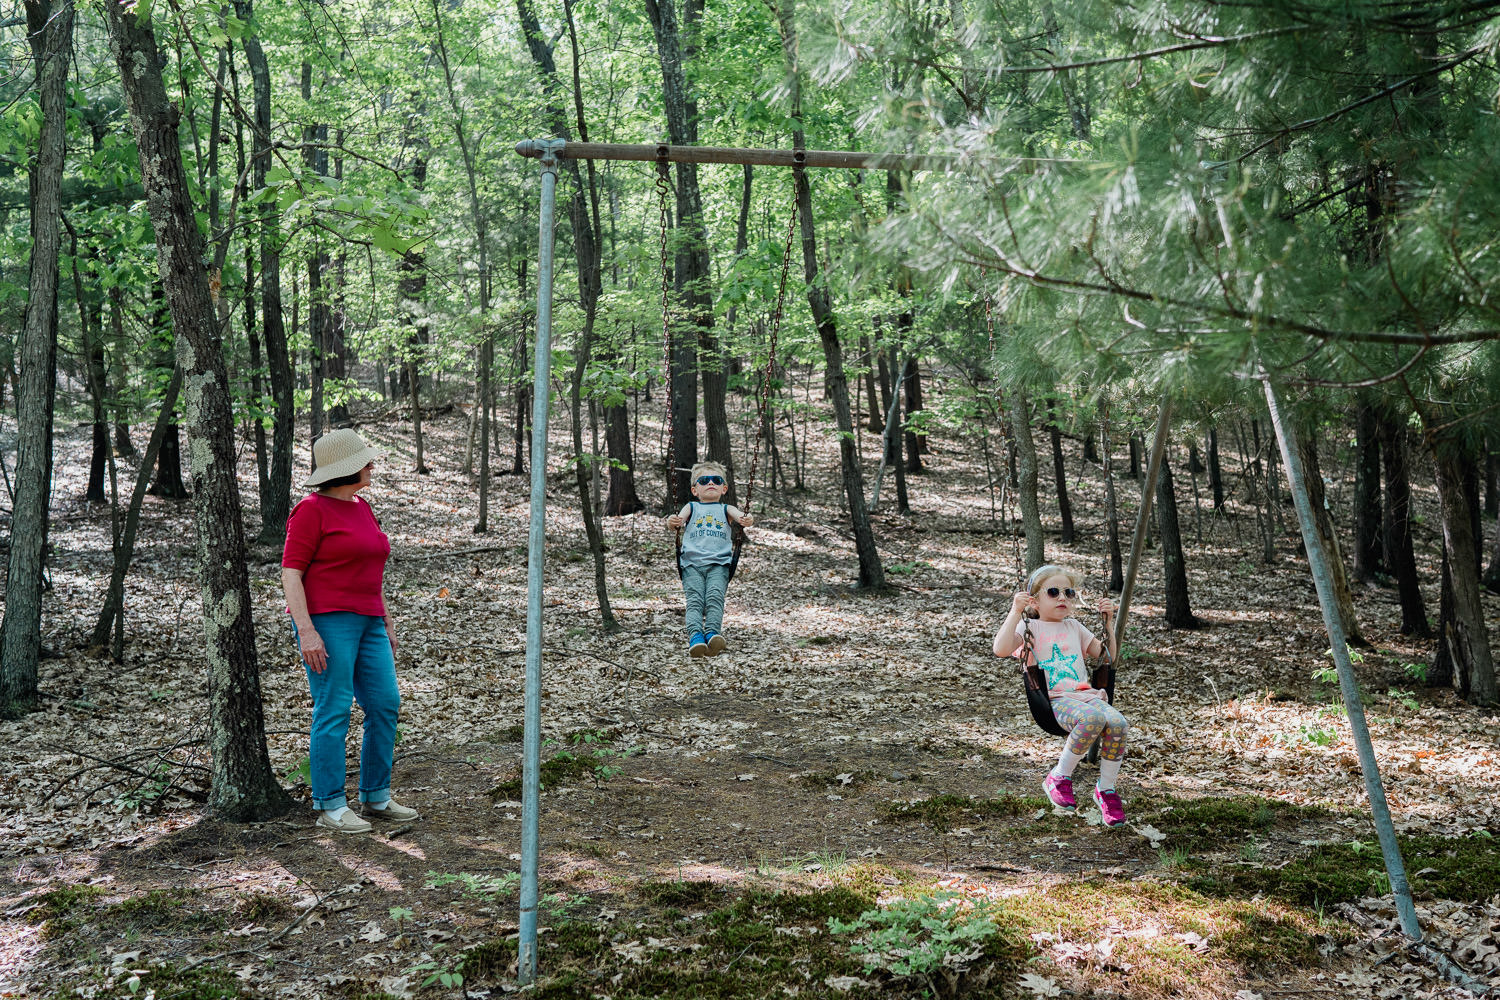 Children play on swings in the woods.